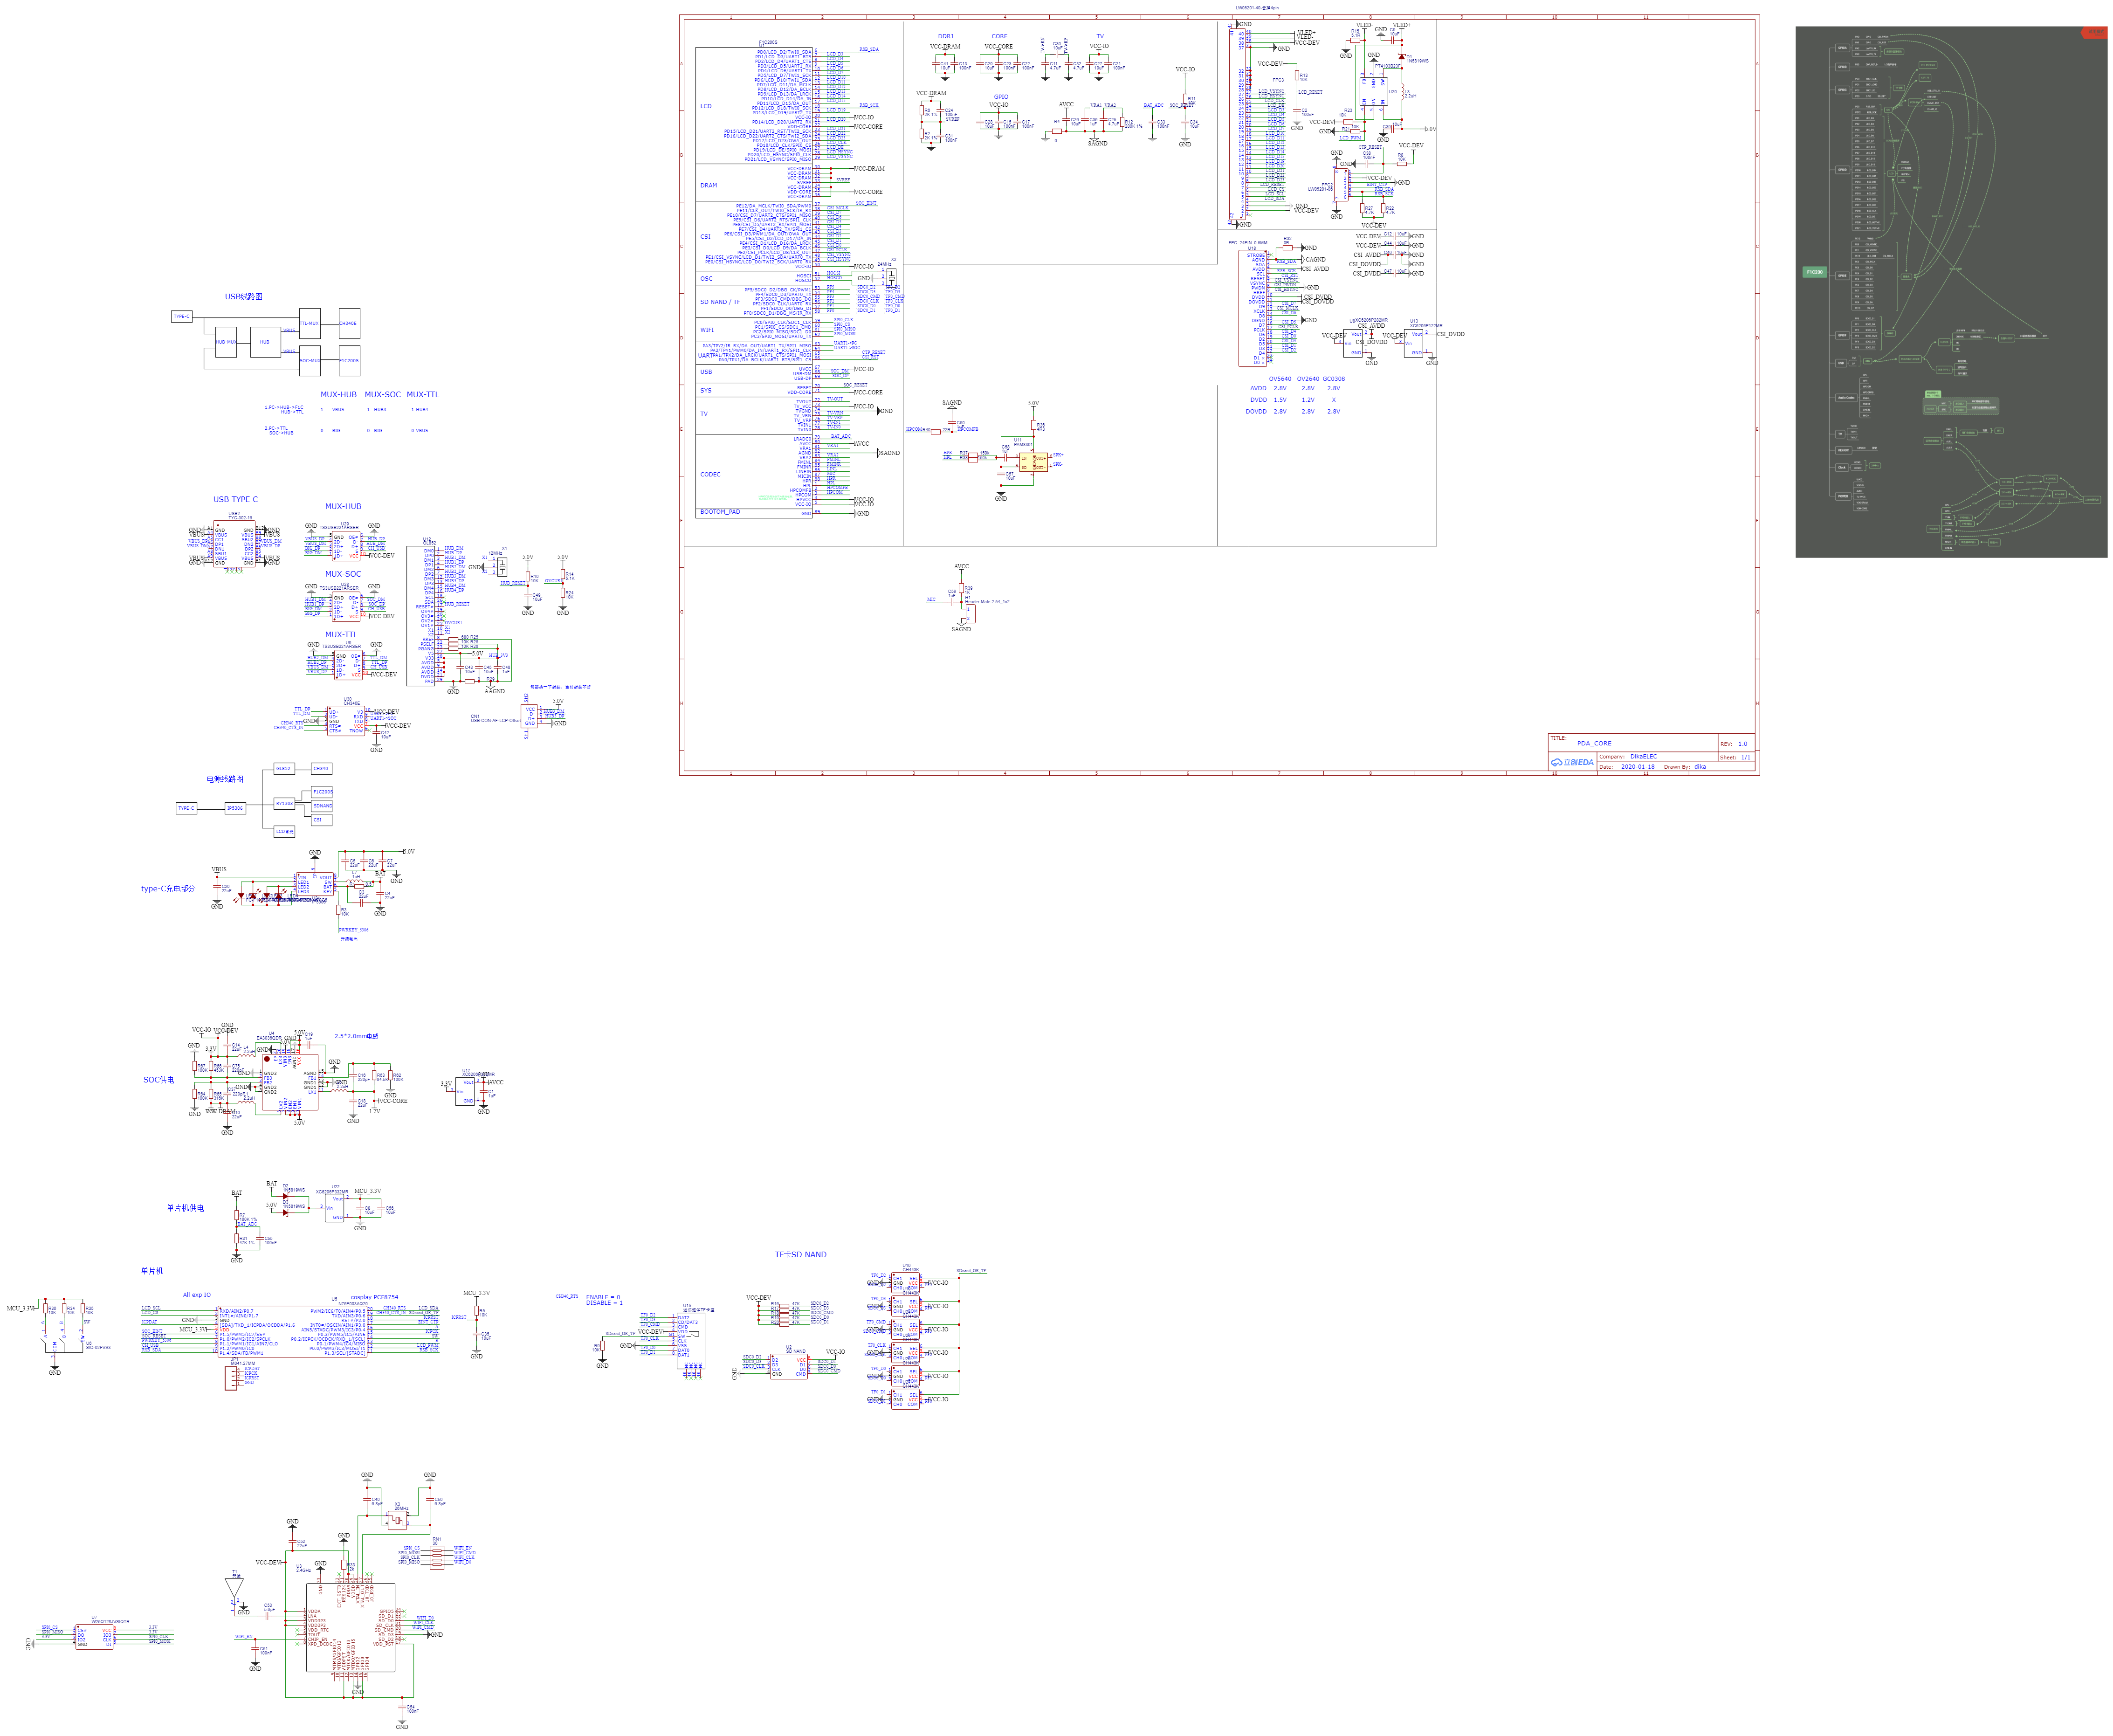 Schematic_200S_PDA_Core_V1_0_2020-05-29_10-20-07.png